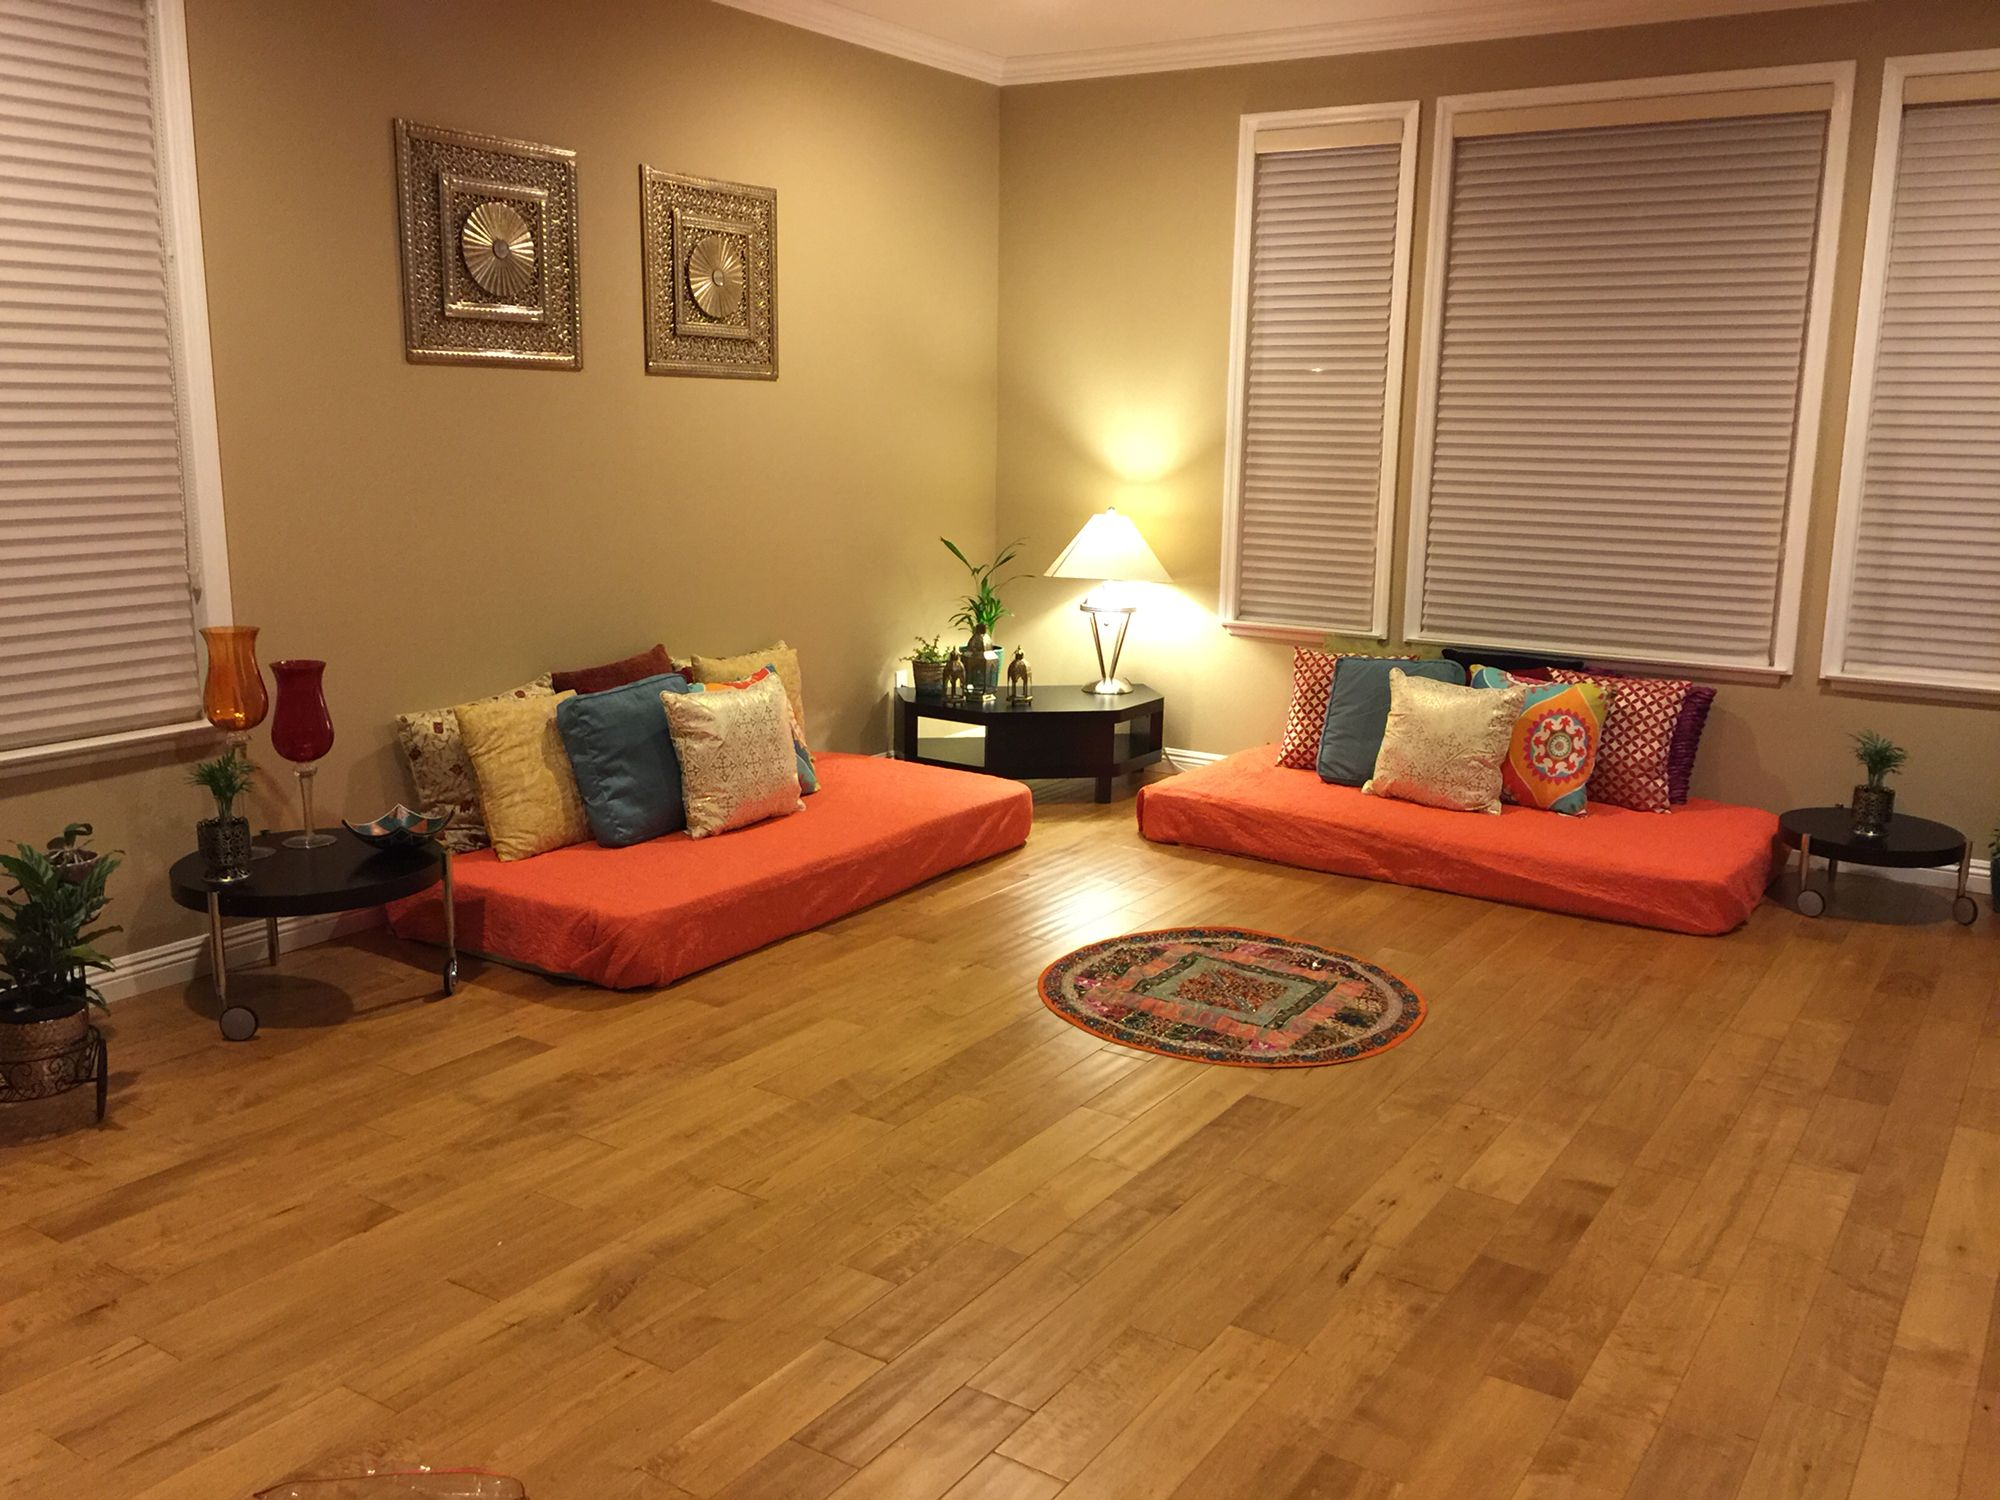 Indian Inspired Living Room Design Ideas Tv Above Fireplace 2 Dream Life Livin More